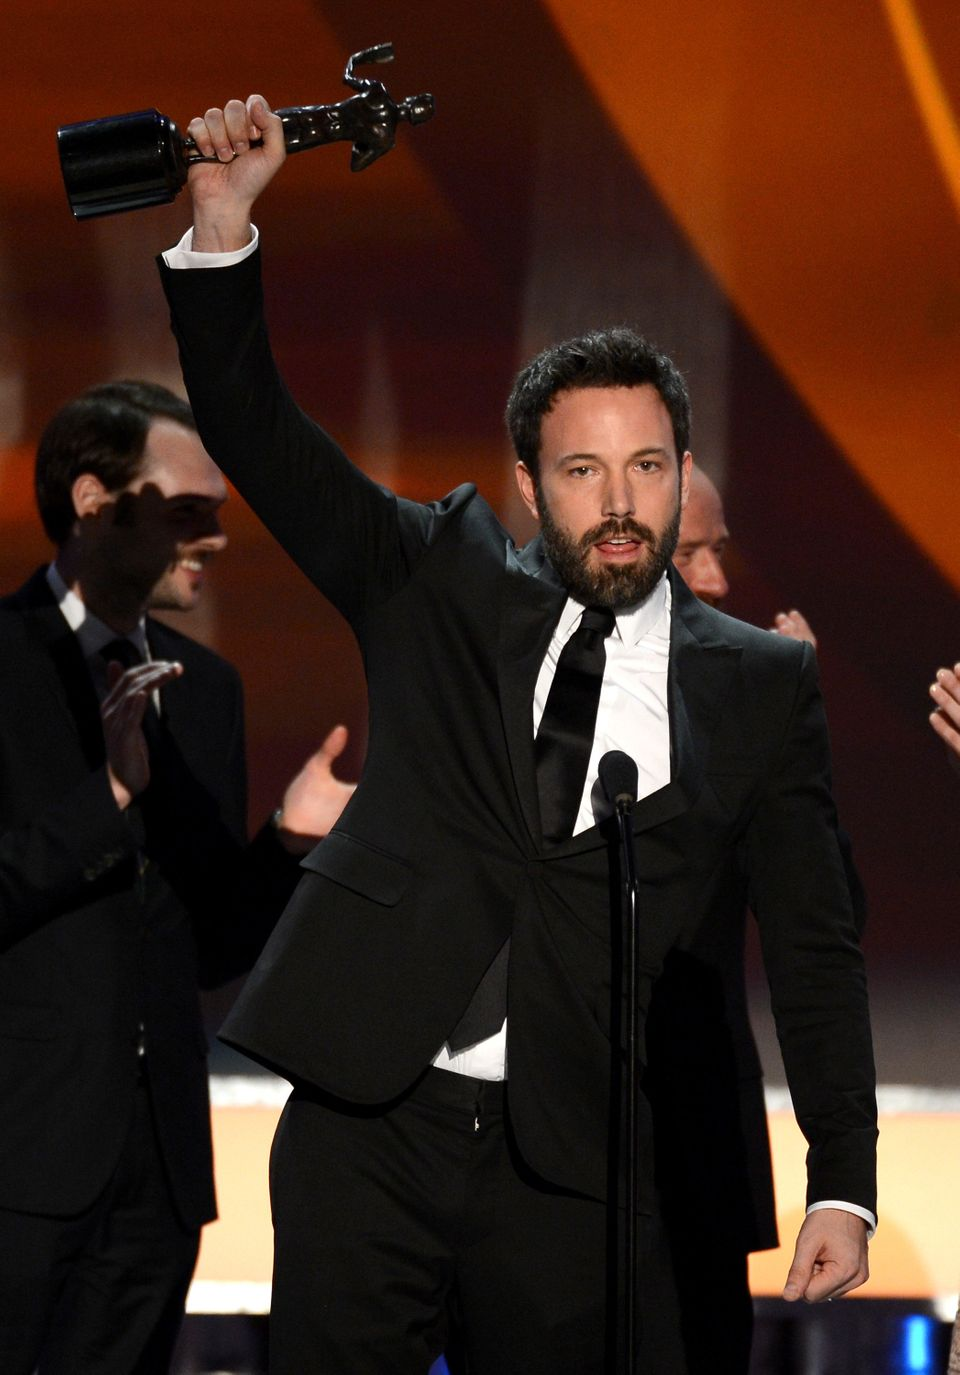 LOS ANGELES, CA - JANUARY 27:  Actor Ben Affleck speaks onstage during the 19th Annual Screen Actors Guild Awards held at The